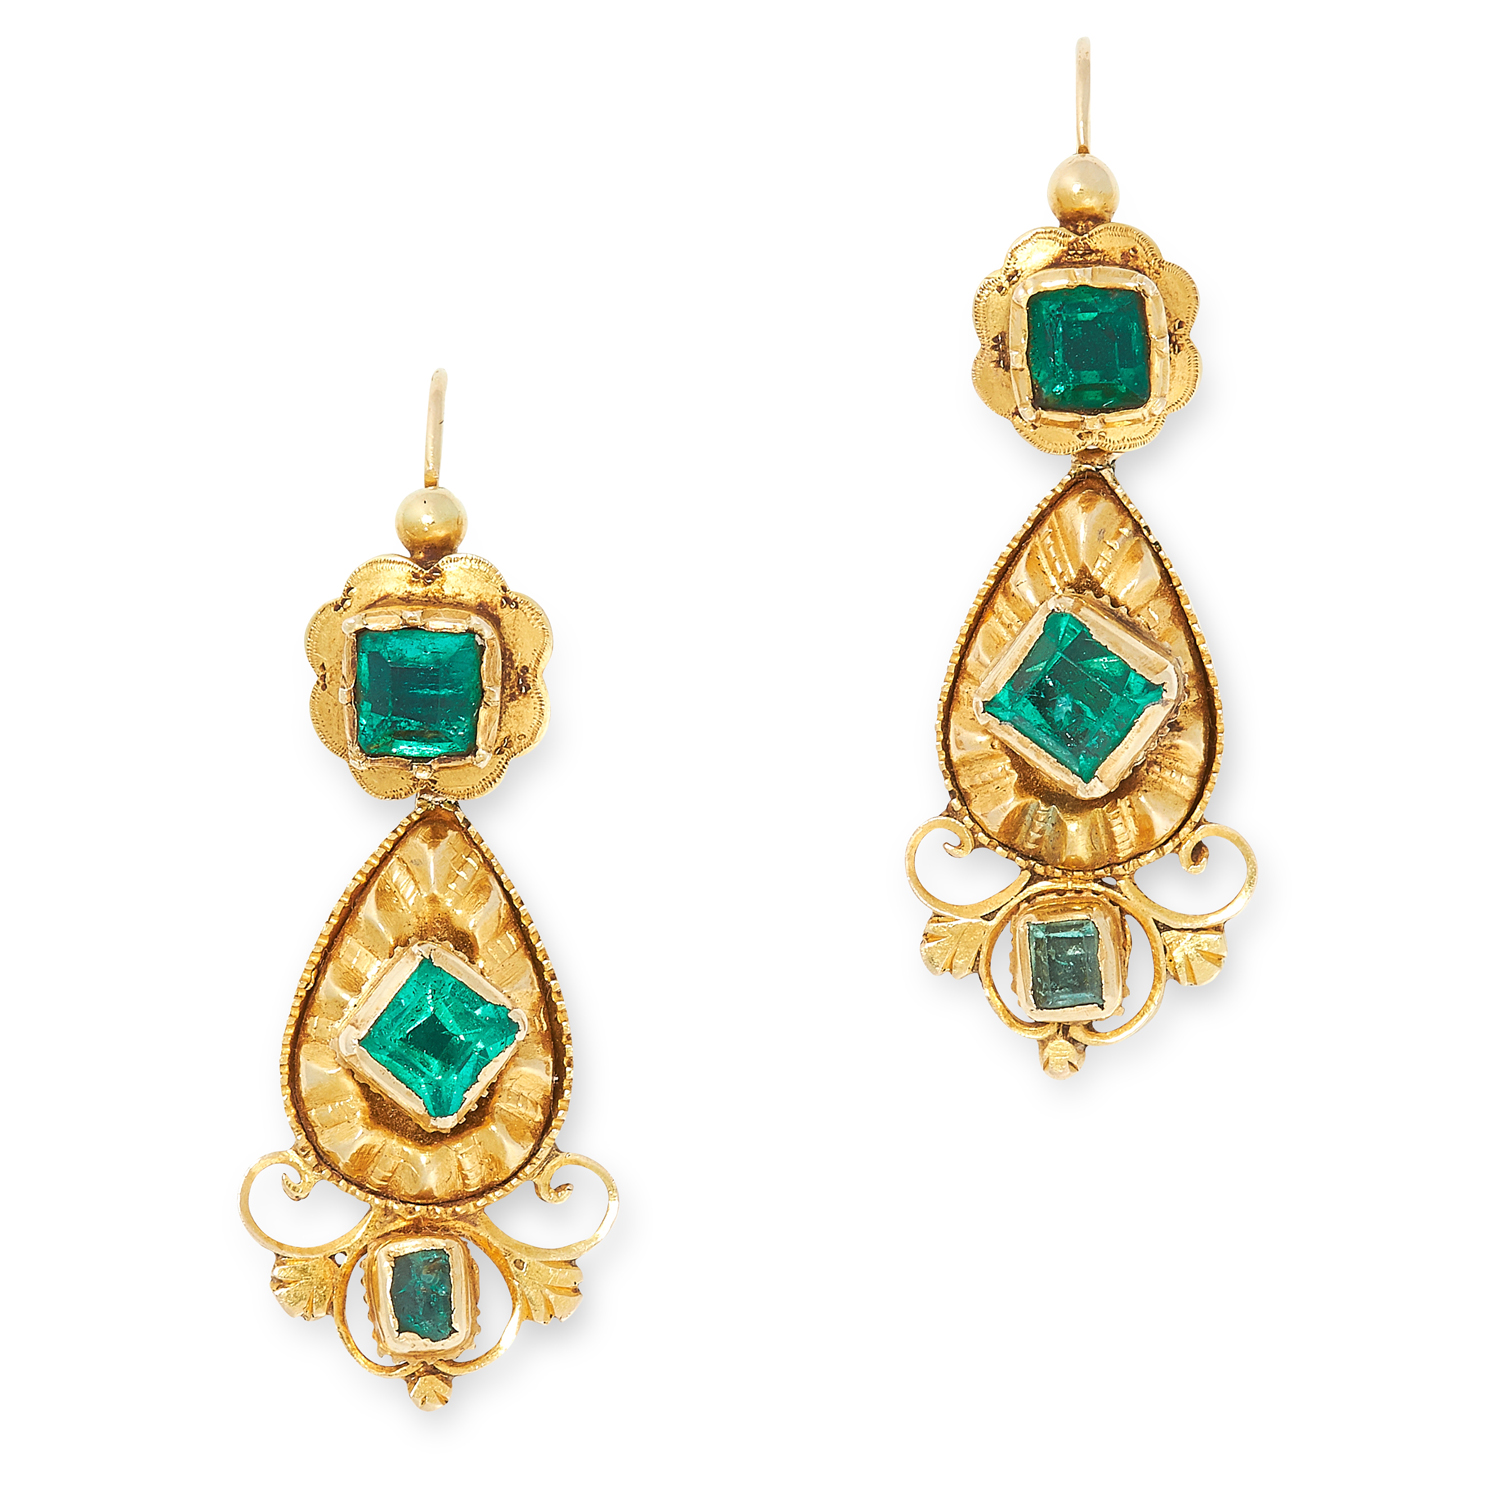 A PAIR OF ANTIQUE EMERALD EARRINGS, SPANISH CIRCA 1800 in high carat yellow gold, the articulated